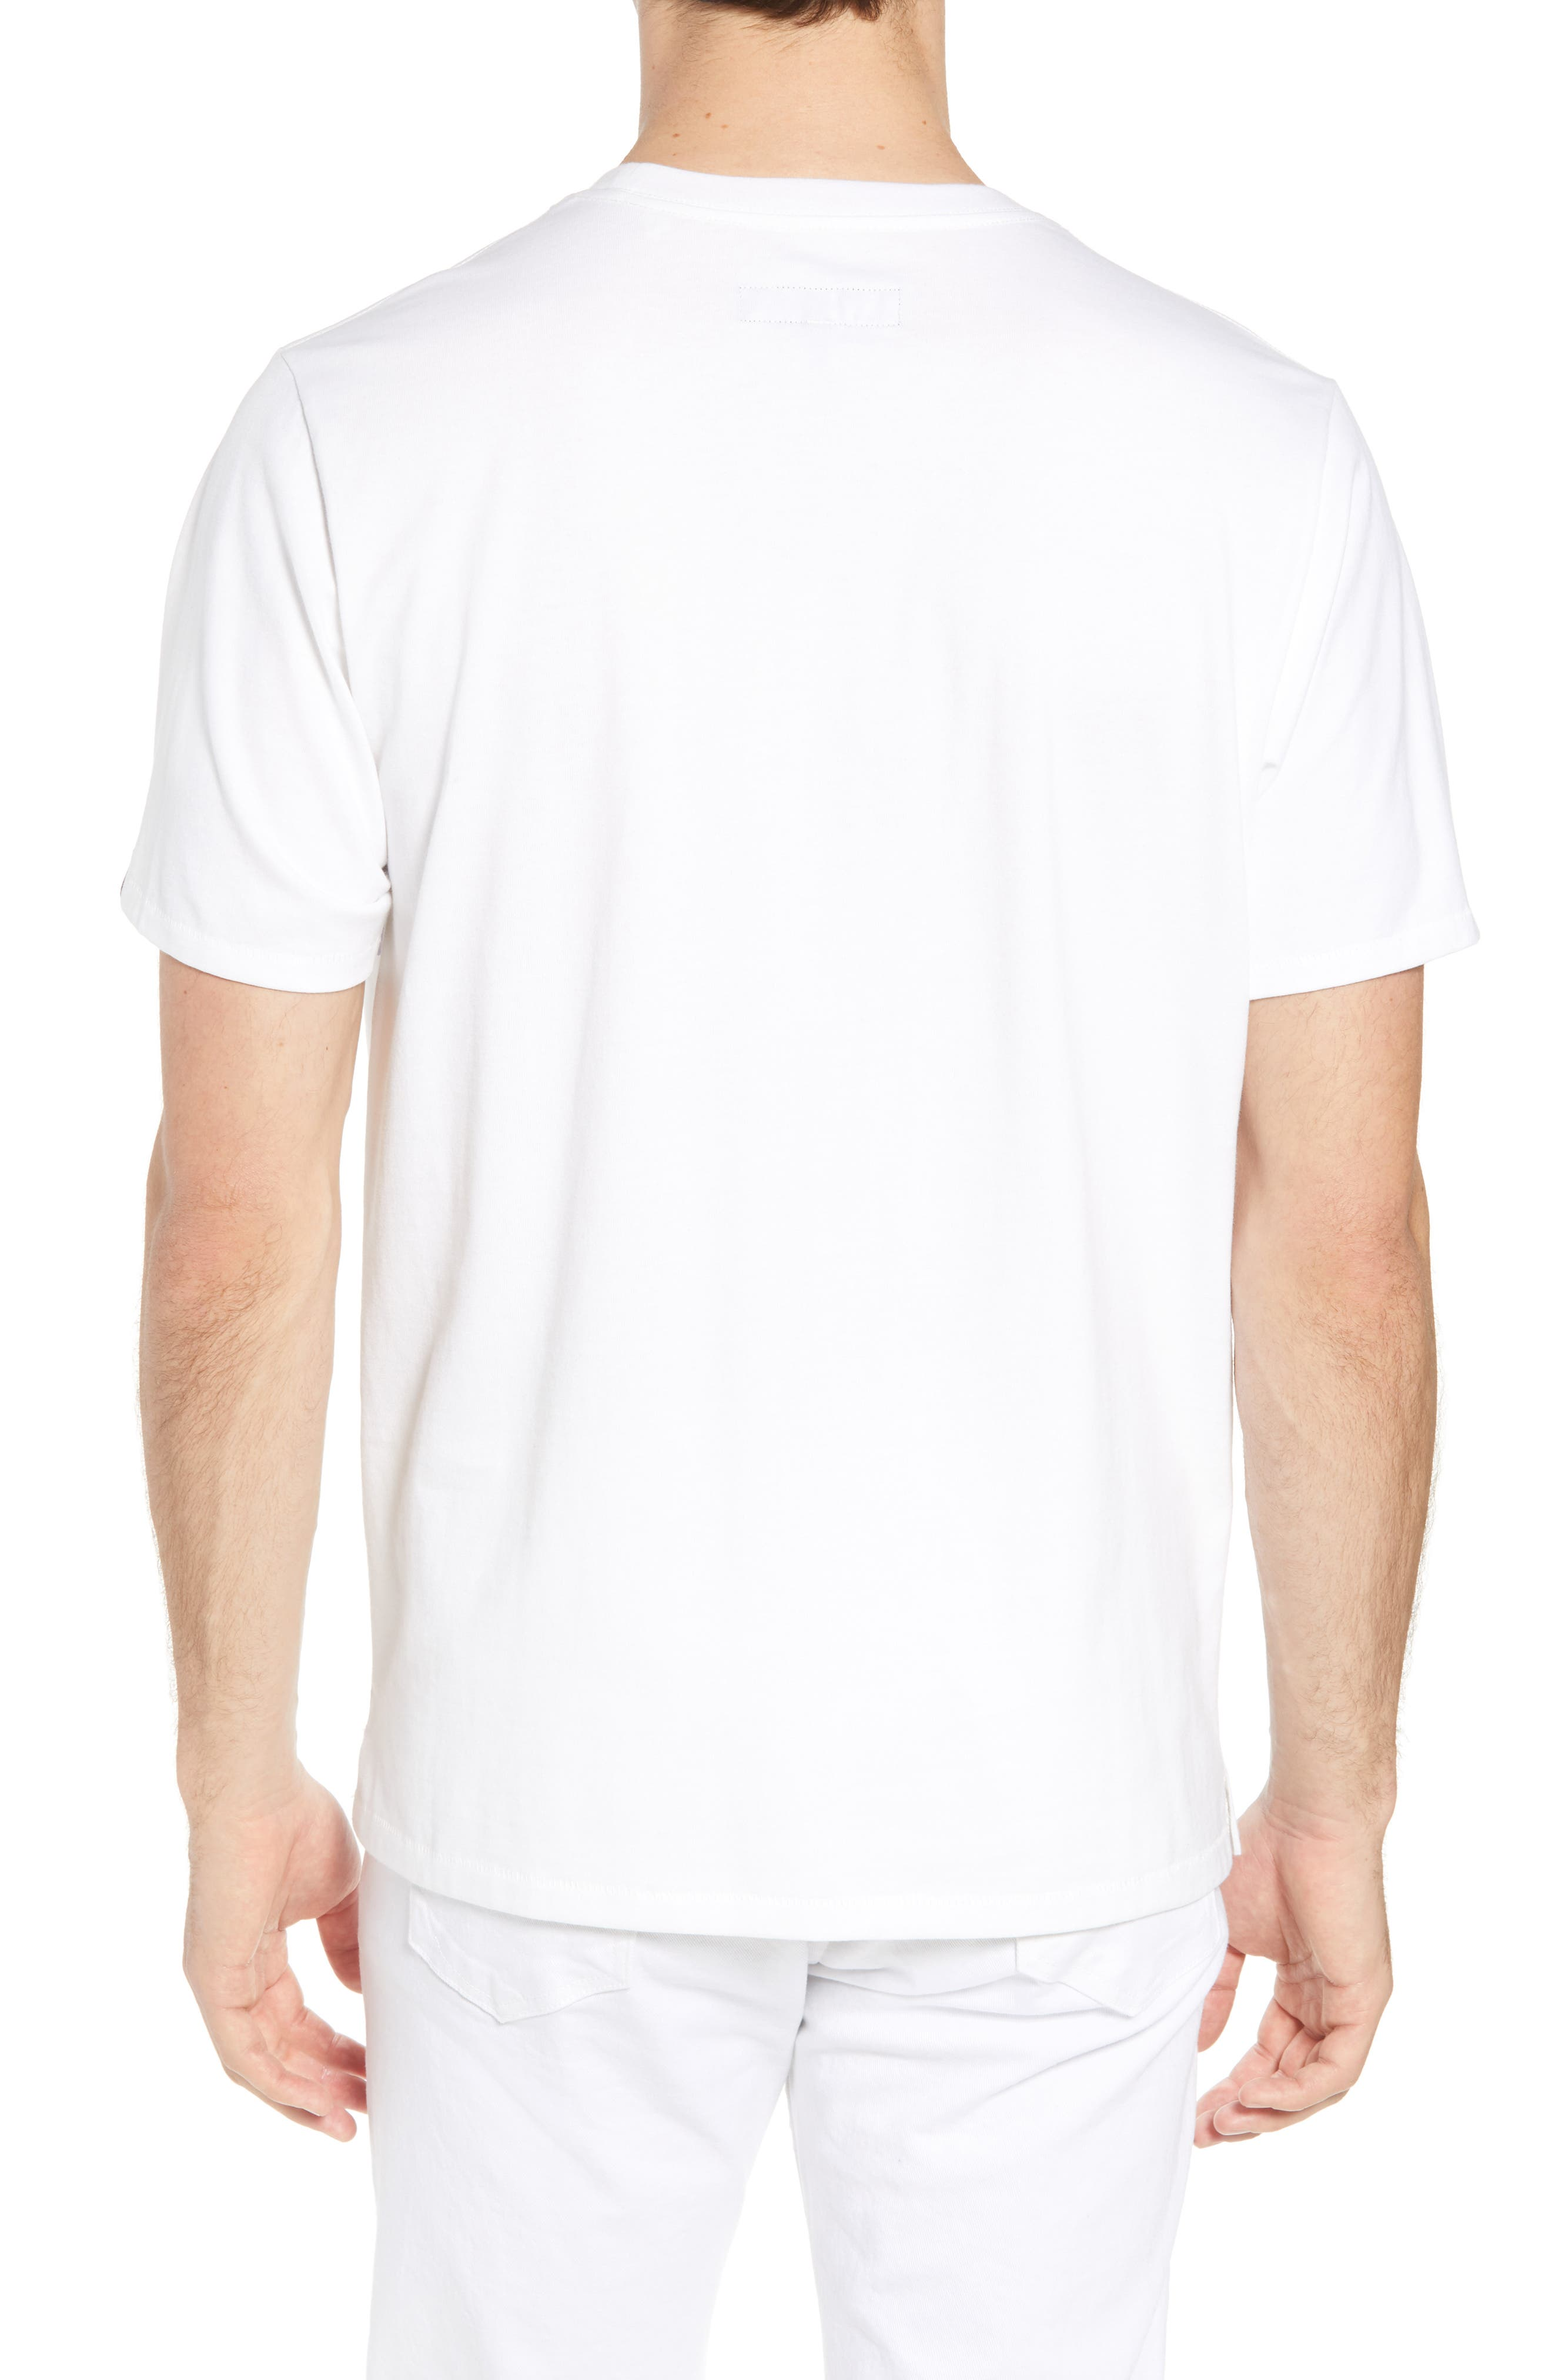 Glitch Regular Fit T-Shirt,                             Alternate thumbnail 2, color,                             White